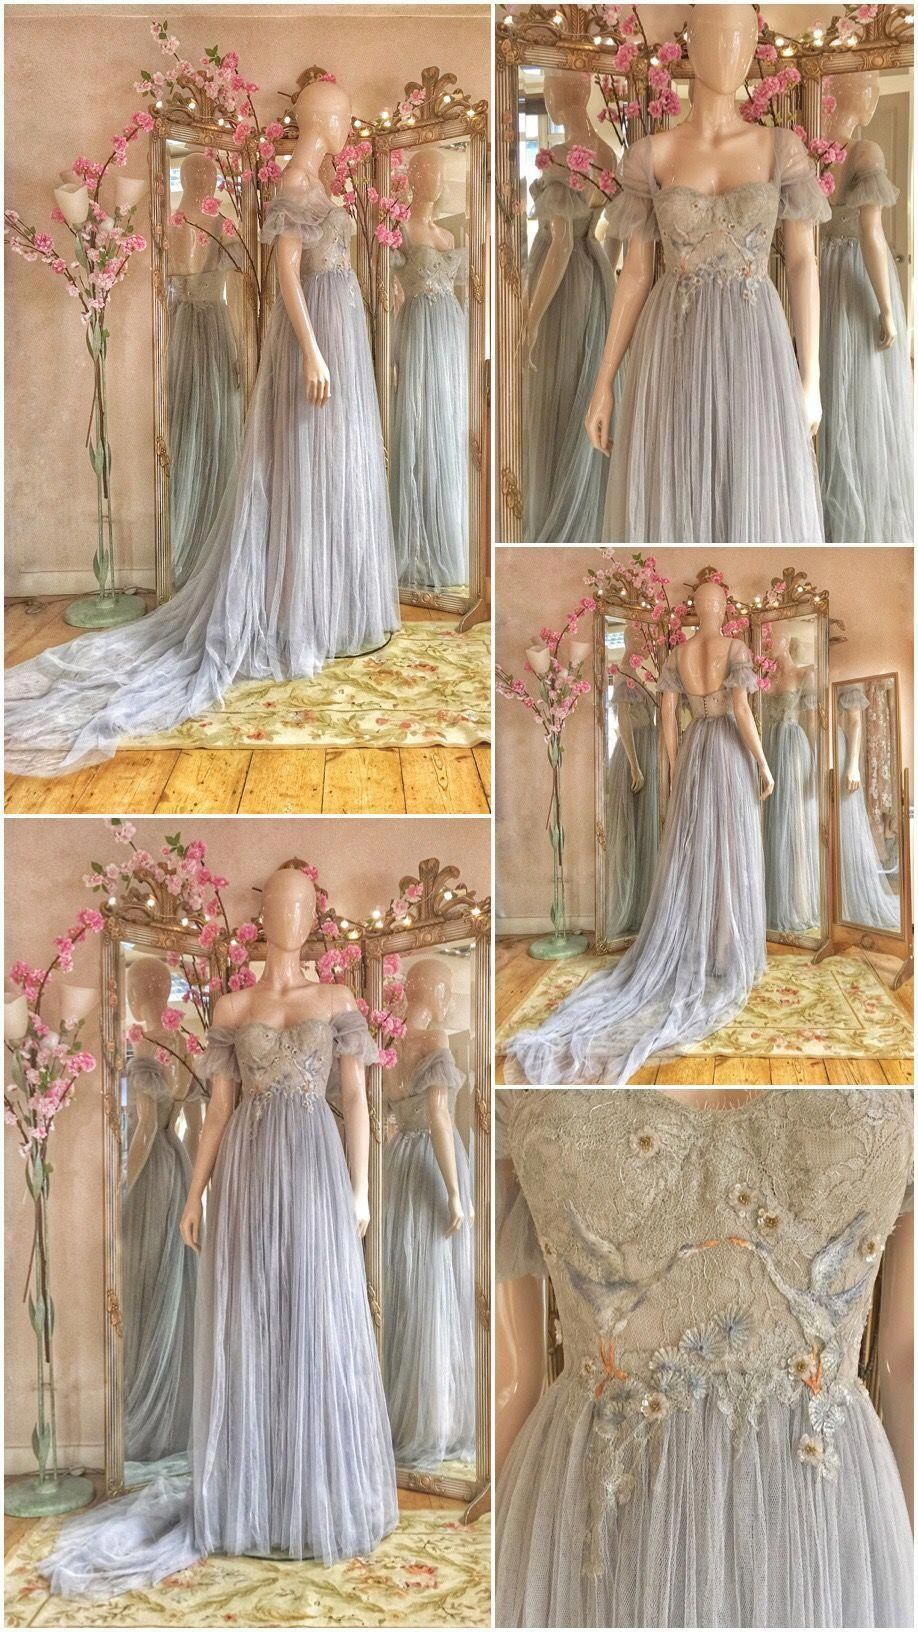 Joanne Fleming Wedding Dress Ebay In 2020 Tulle Wedding Dress Wedding Dresses Ebay Ball Gowns Wedding